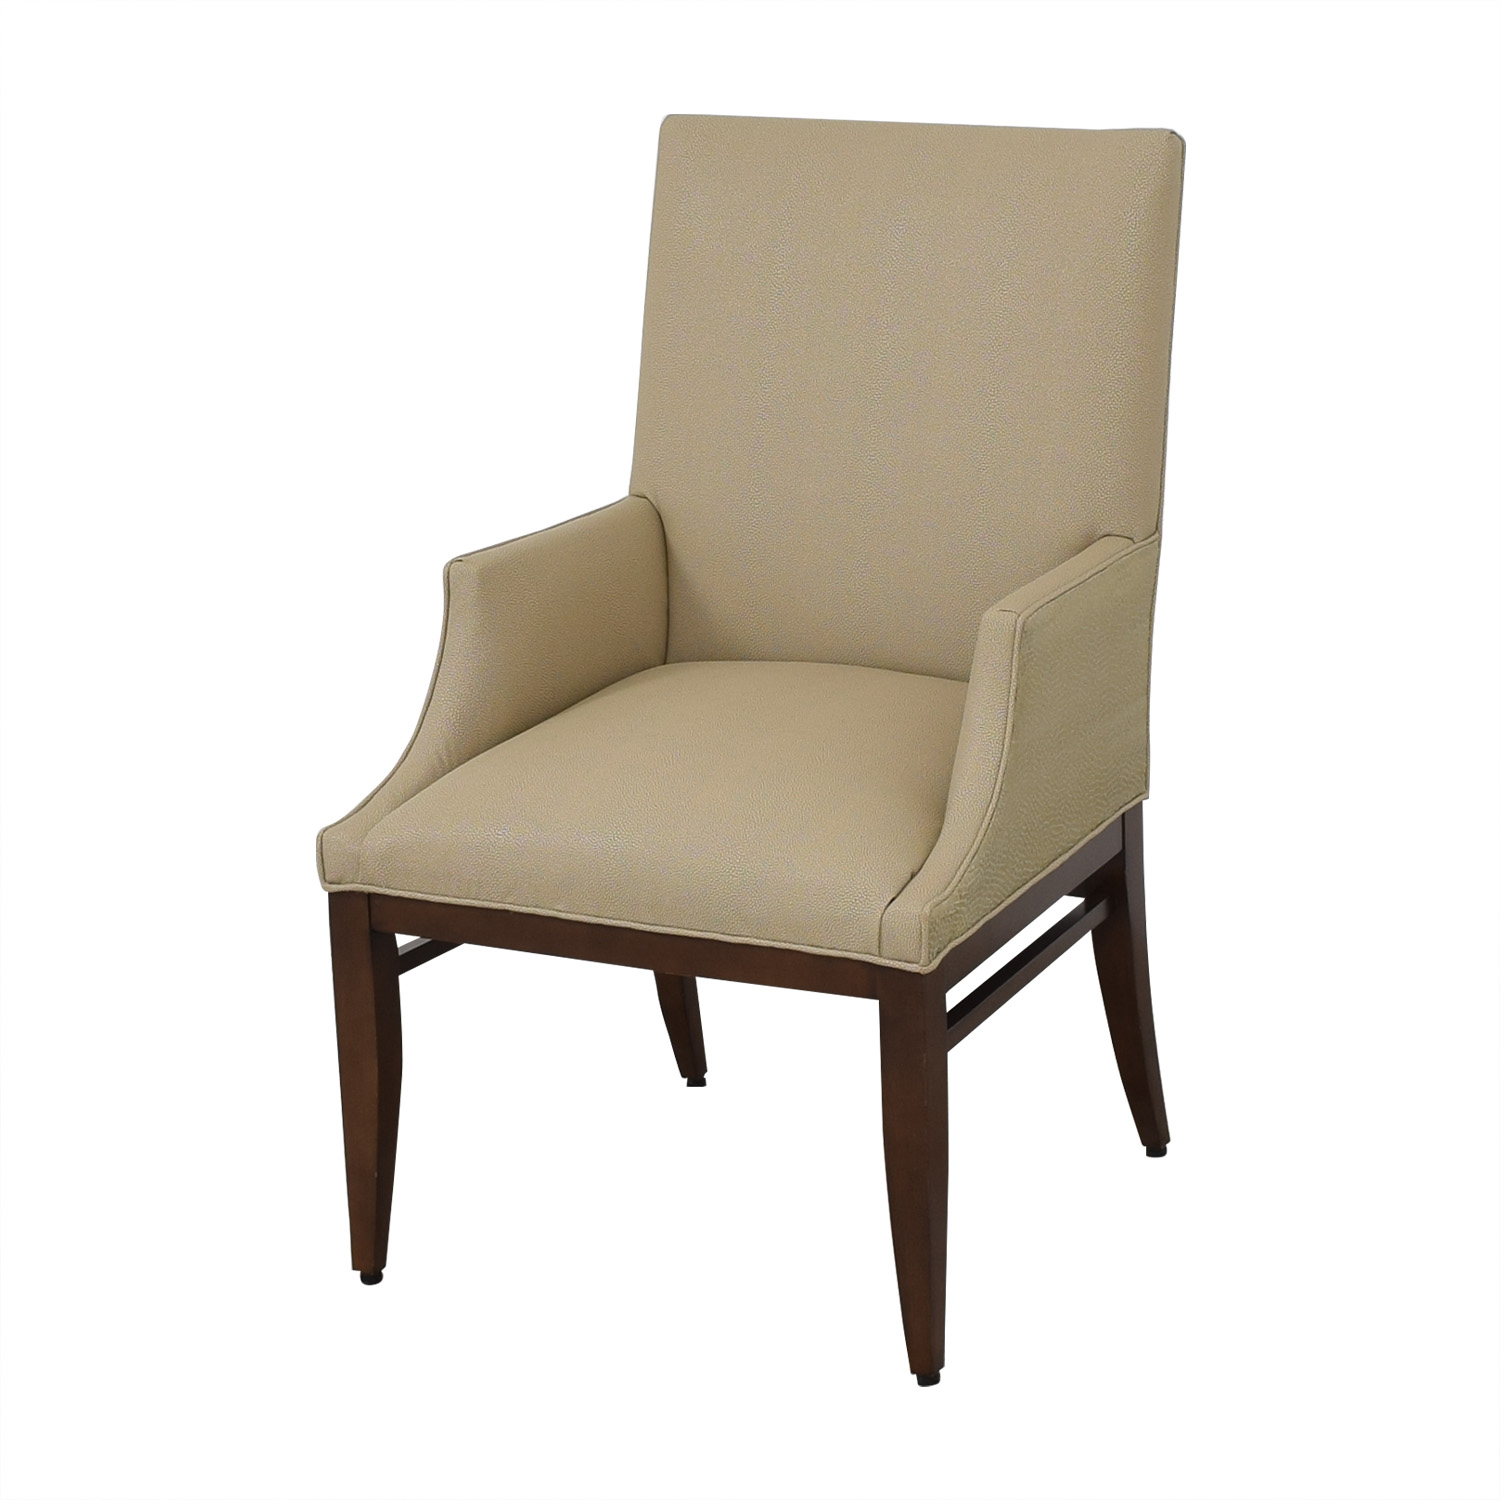 Duralee Custom Upholstered Dining Arm Chairs Duralee